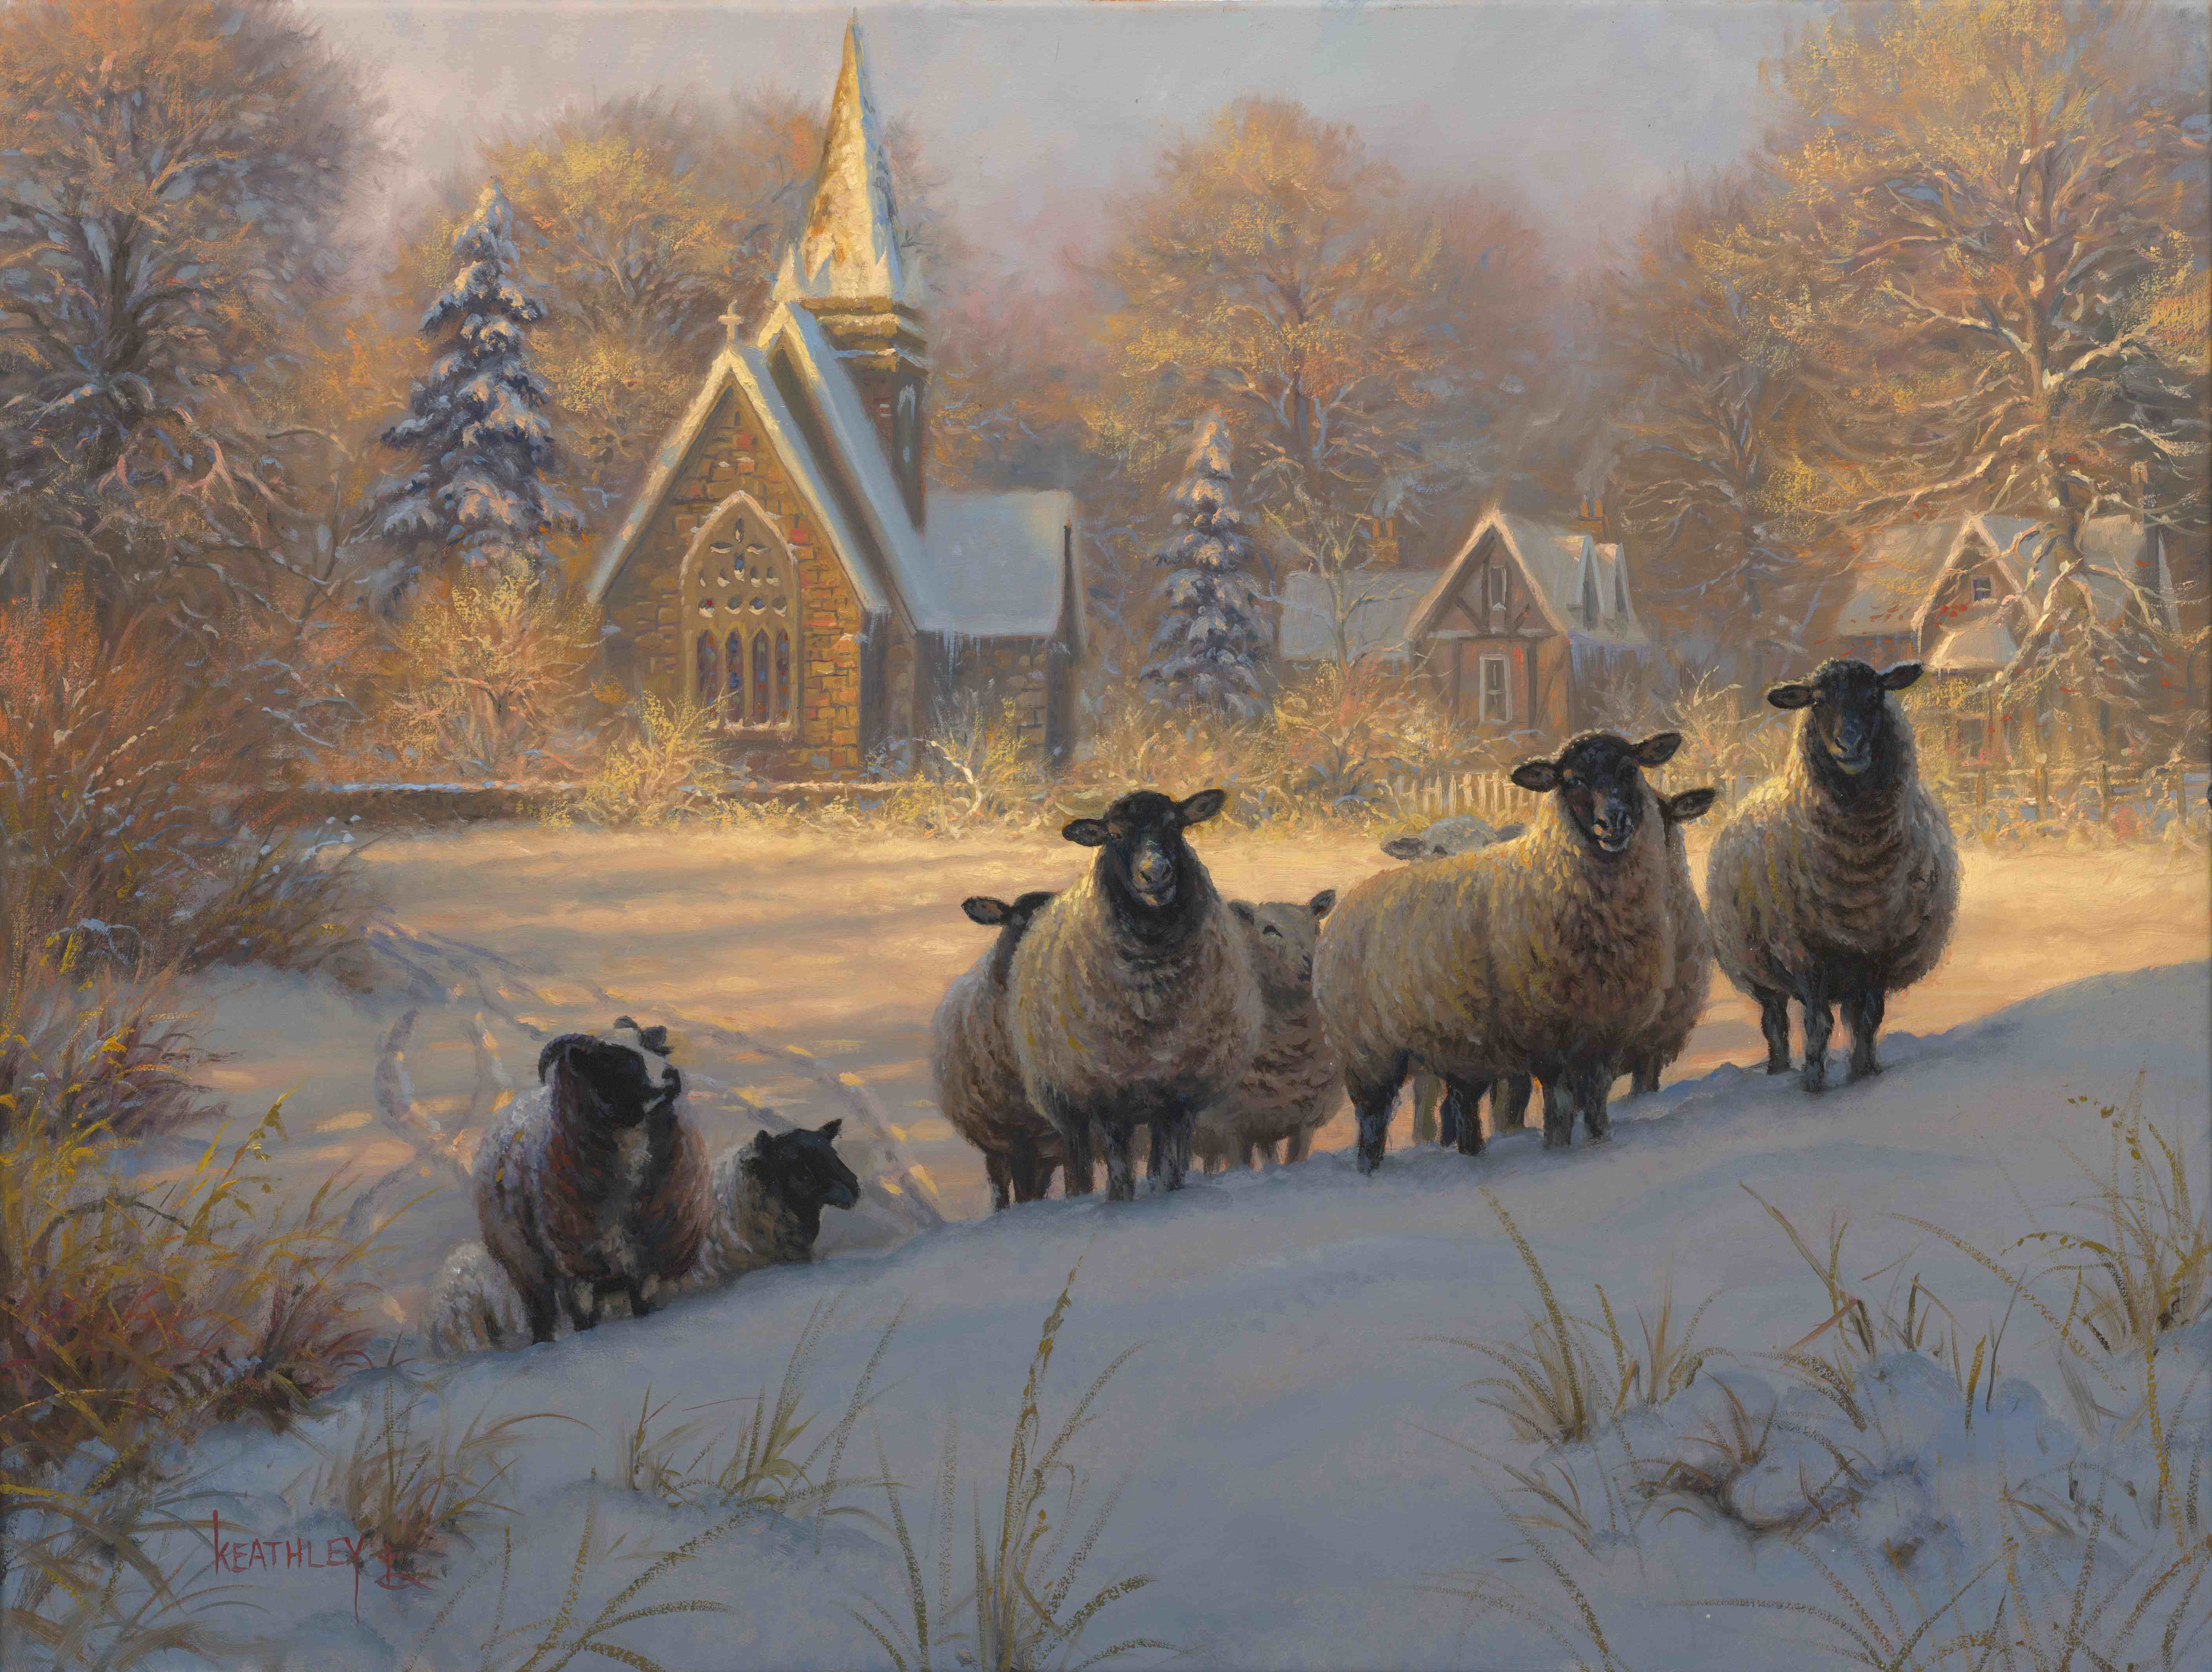 Follow Me by Mark Keathley